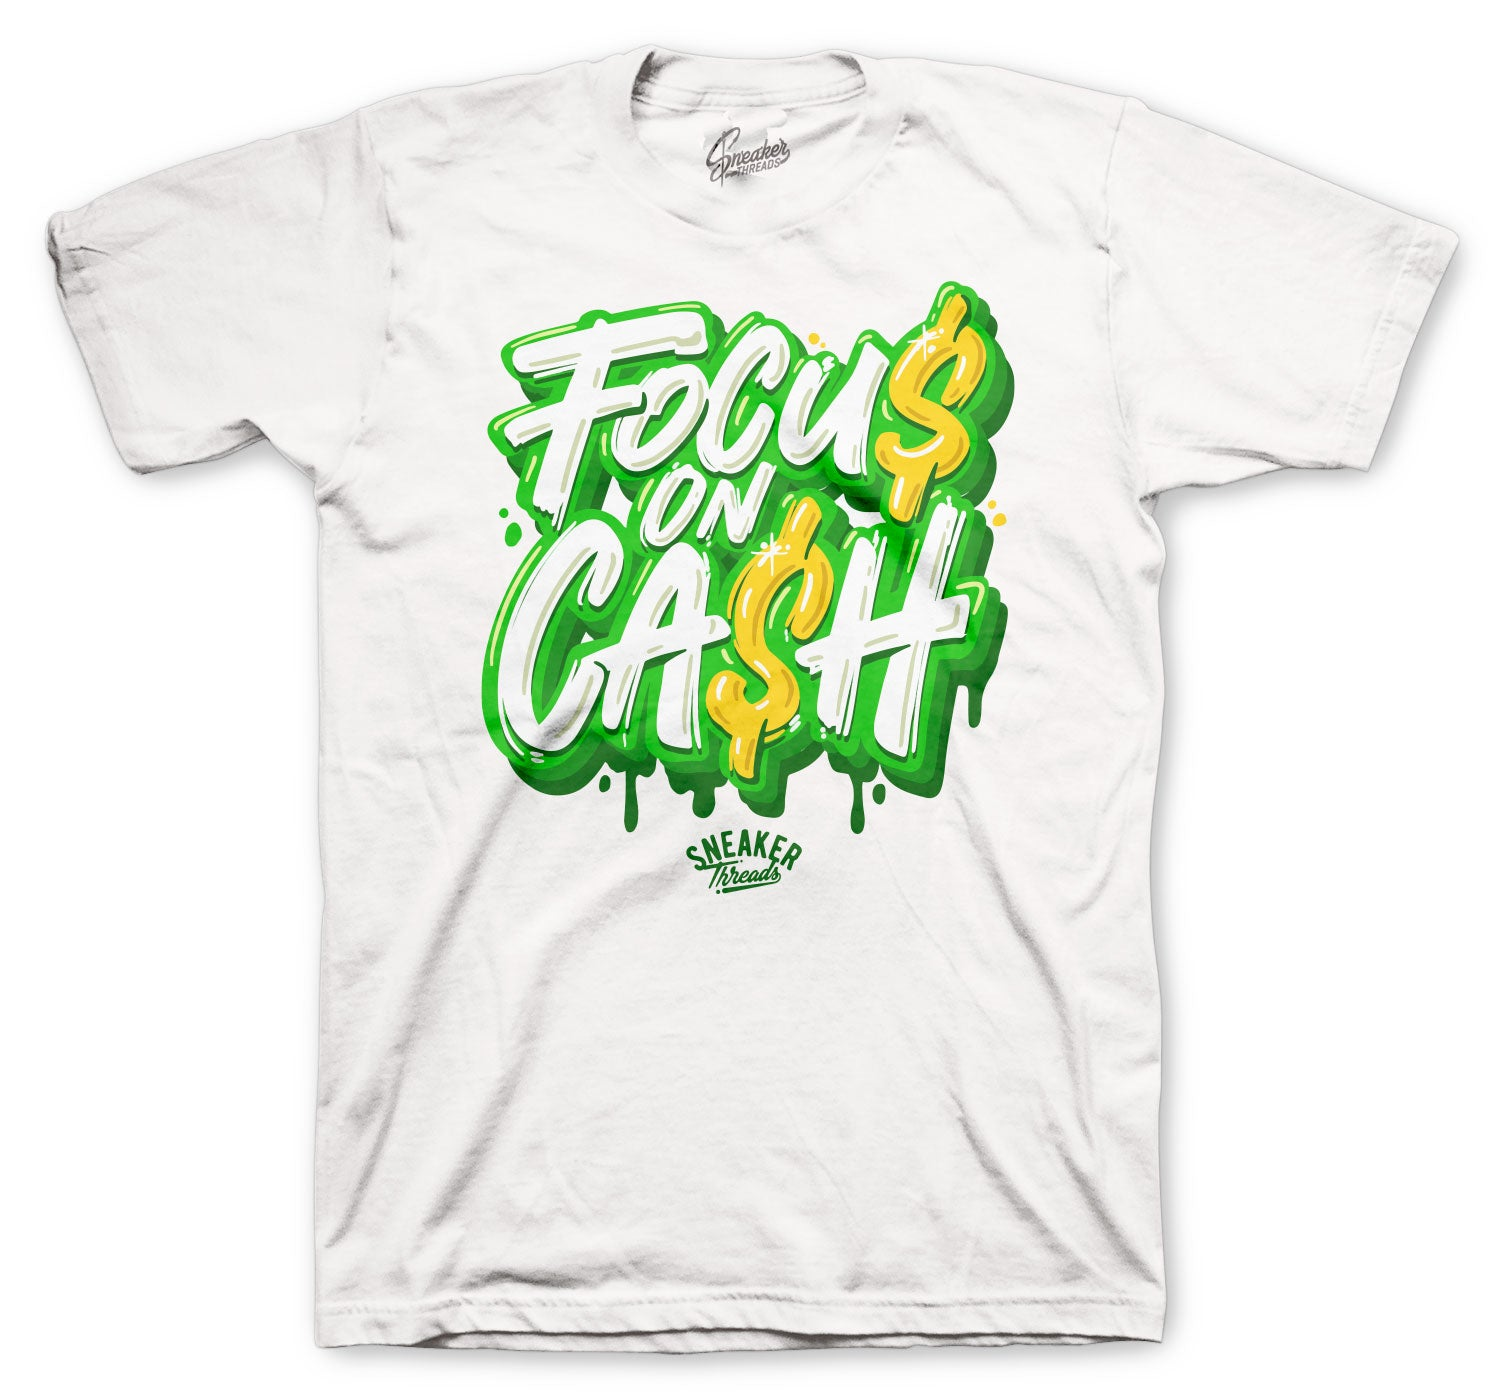 Jordan 4 Green Metallic Shirt - Focus On $ - White